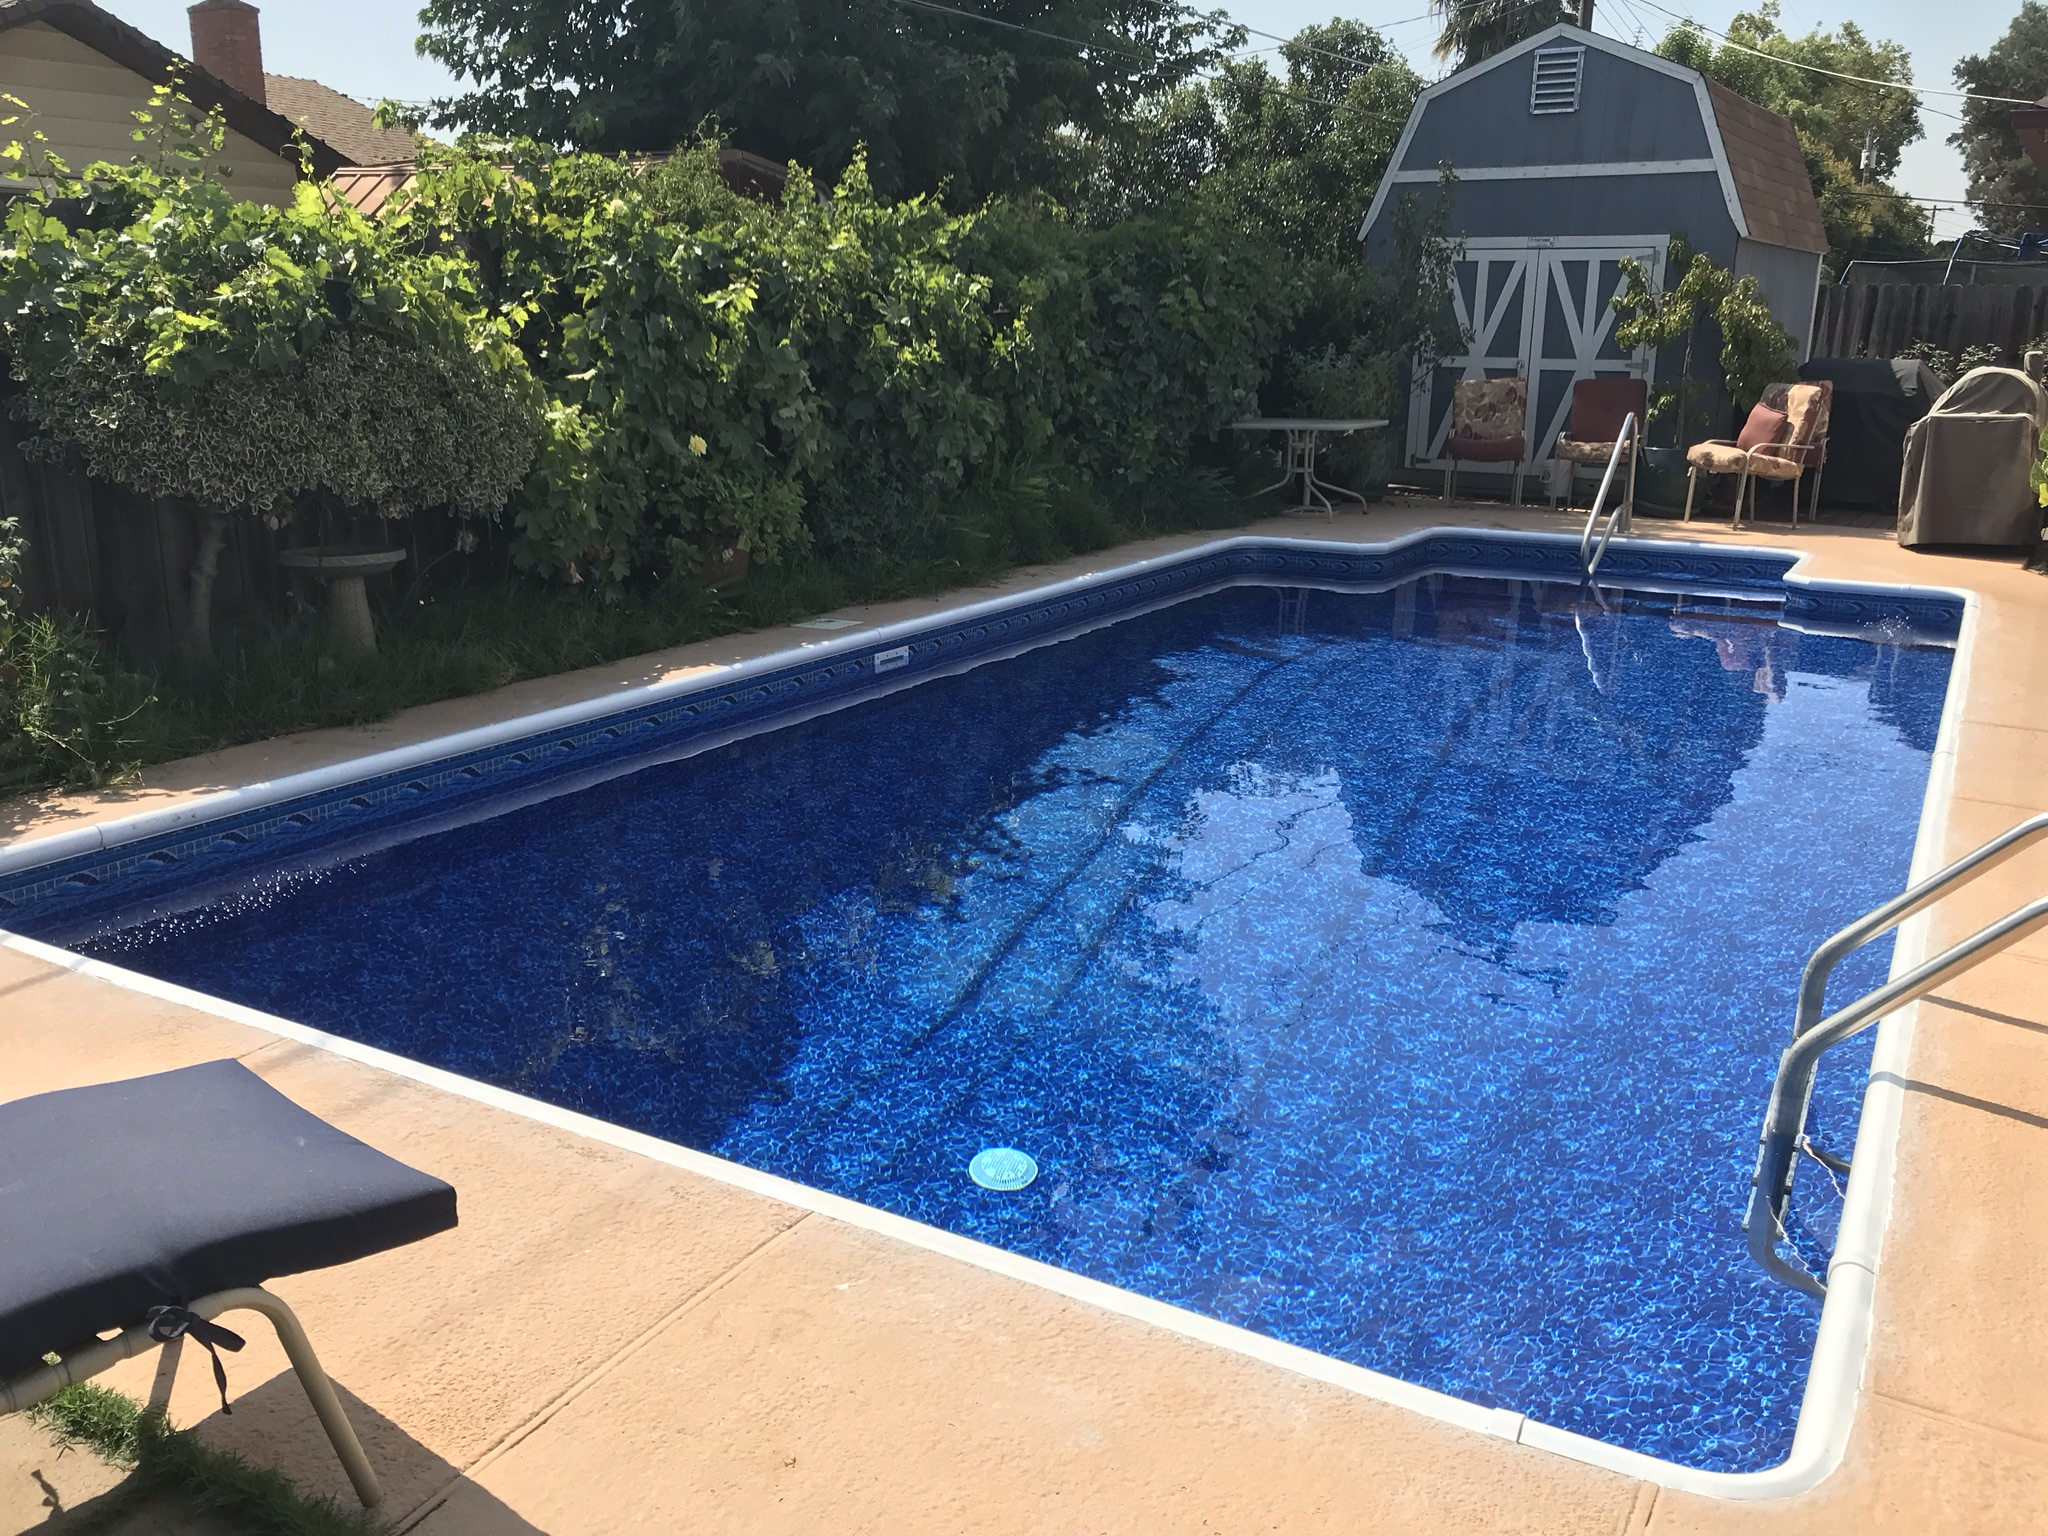 15x30 Inground Pool Liner Installation In Rancho Cordova Ca Above The Rest Pools Inc